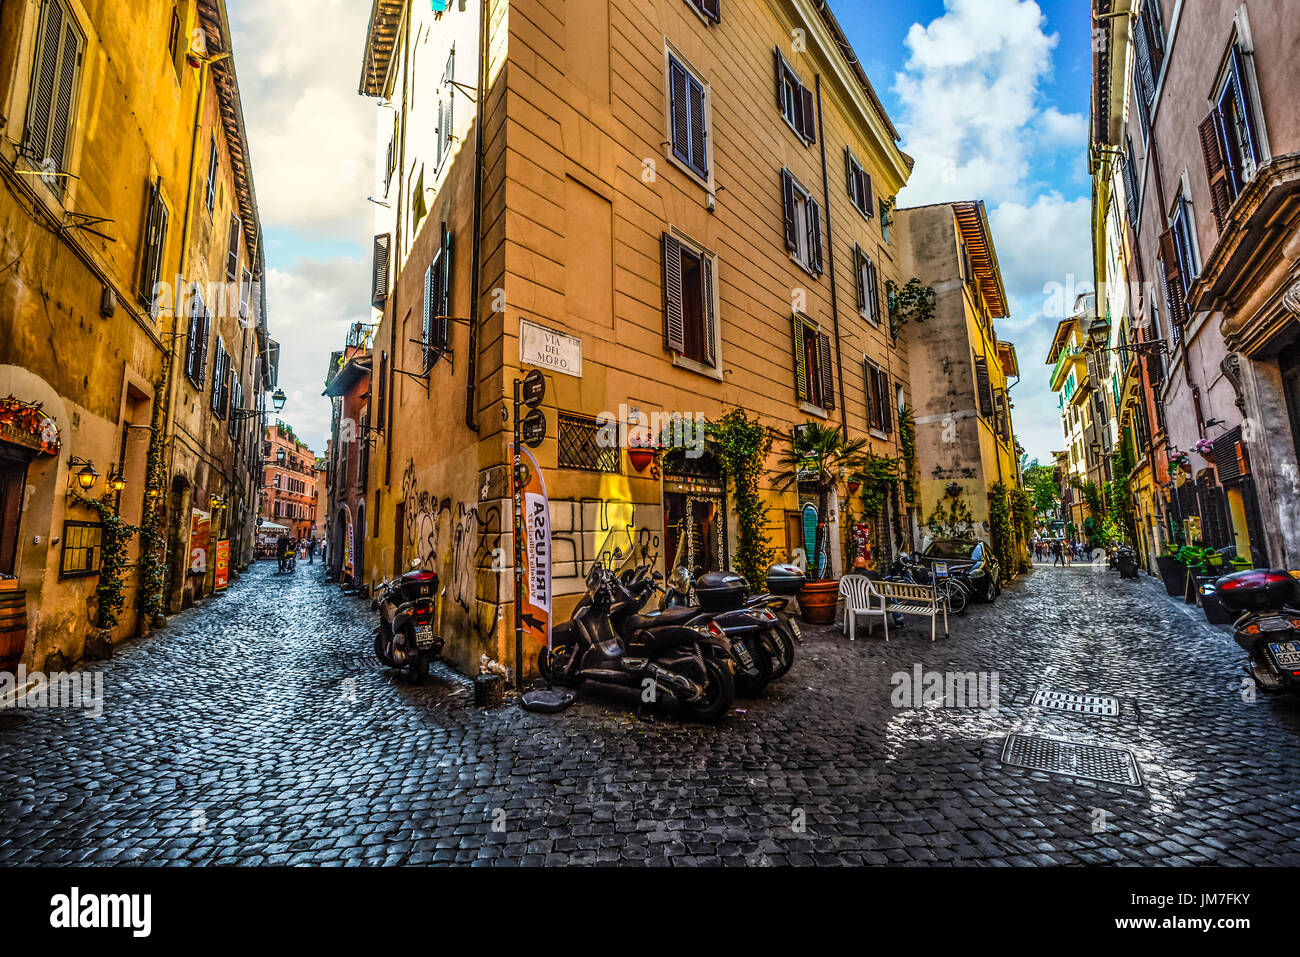 Picturesque and colorful back street with motorcycles and shops in the Trastevere district of Rome Italy on a sunny summer afternoon - Stock Image